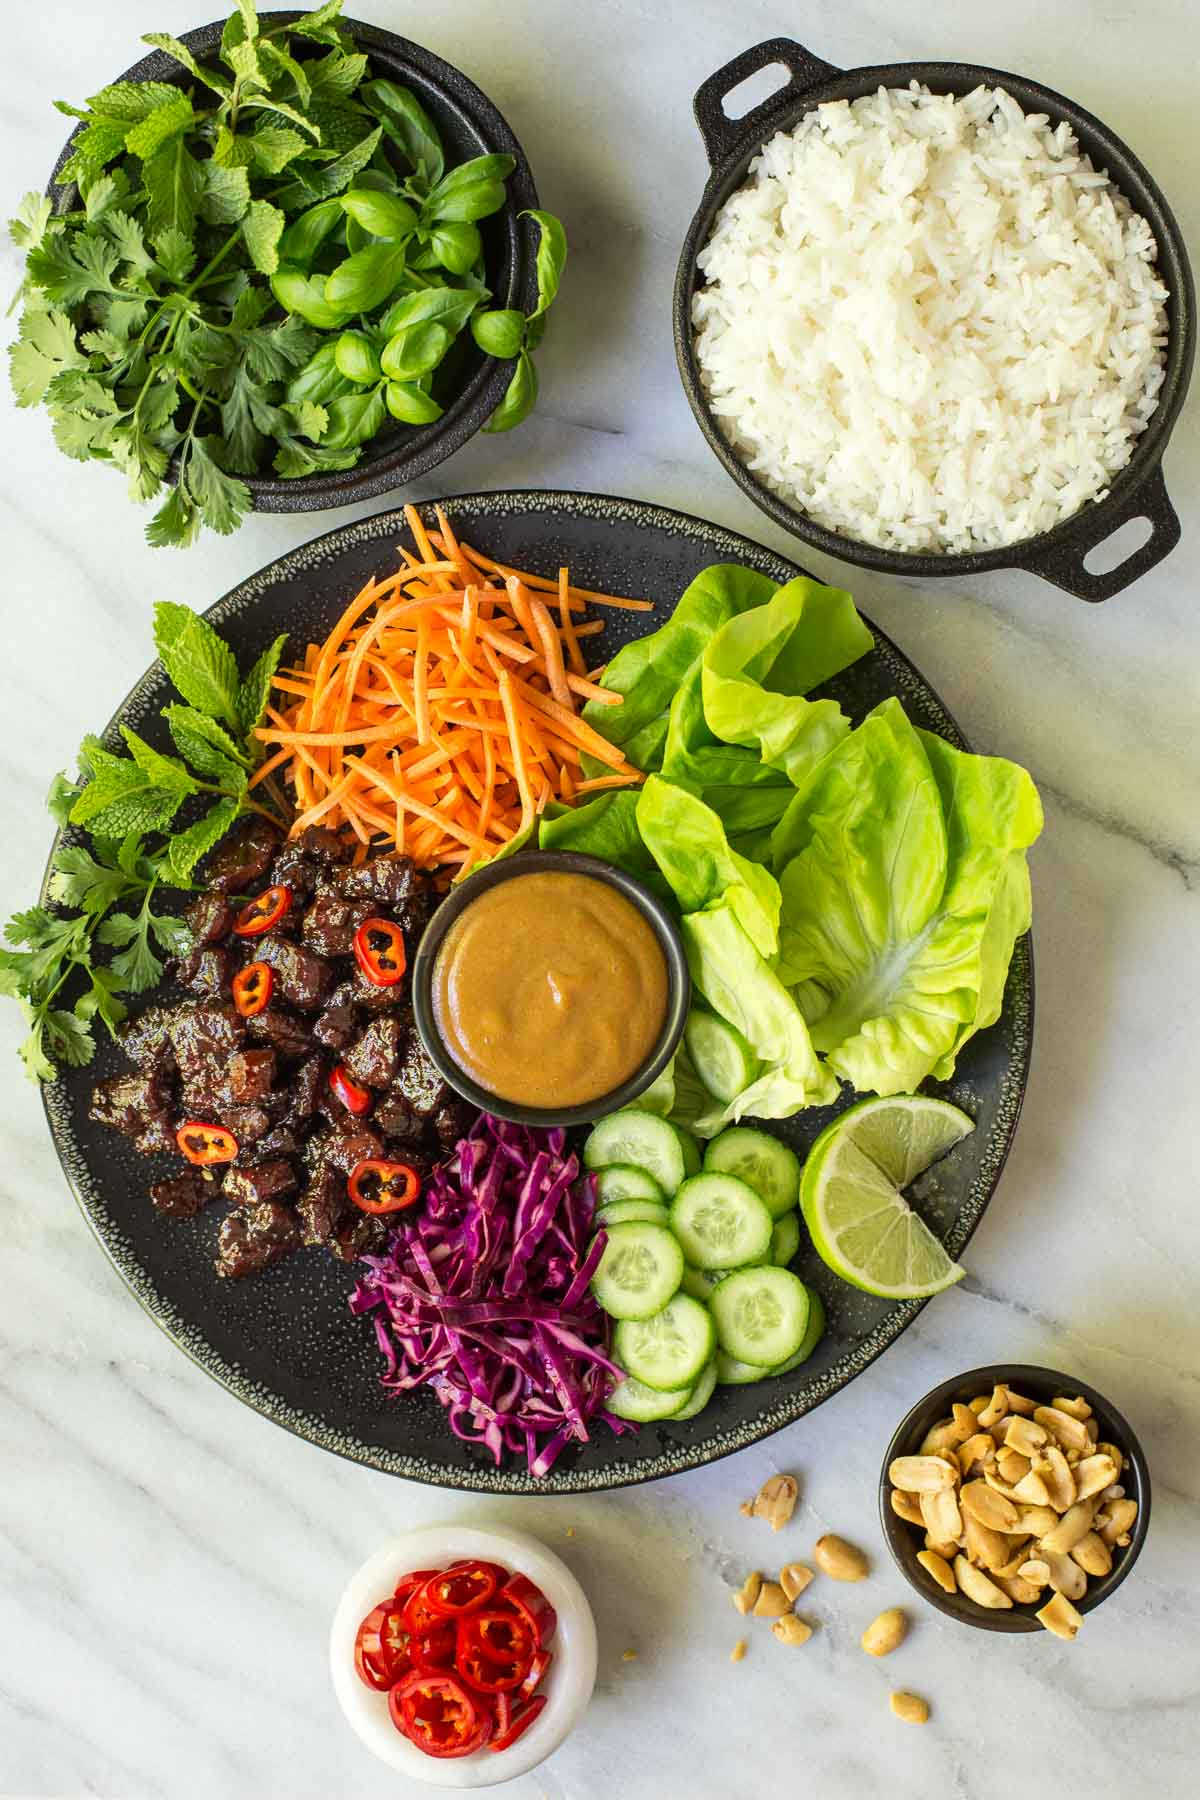 Overhead view of Vietnamese Caramel Pork Lettuce Wraps on a marble countertop